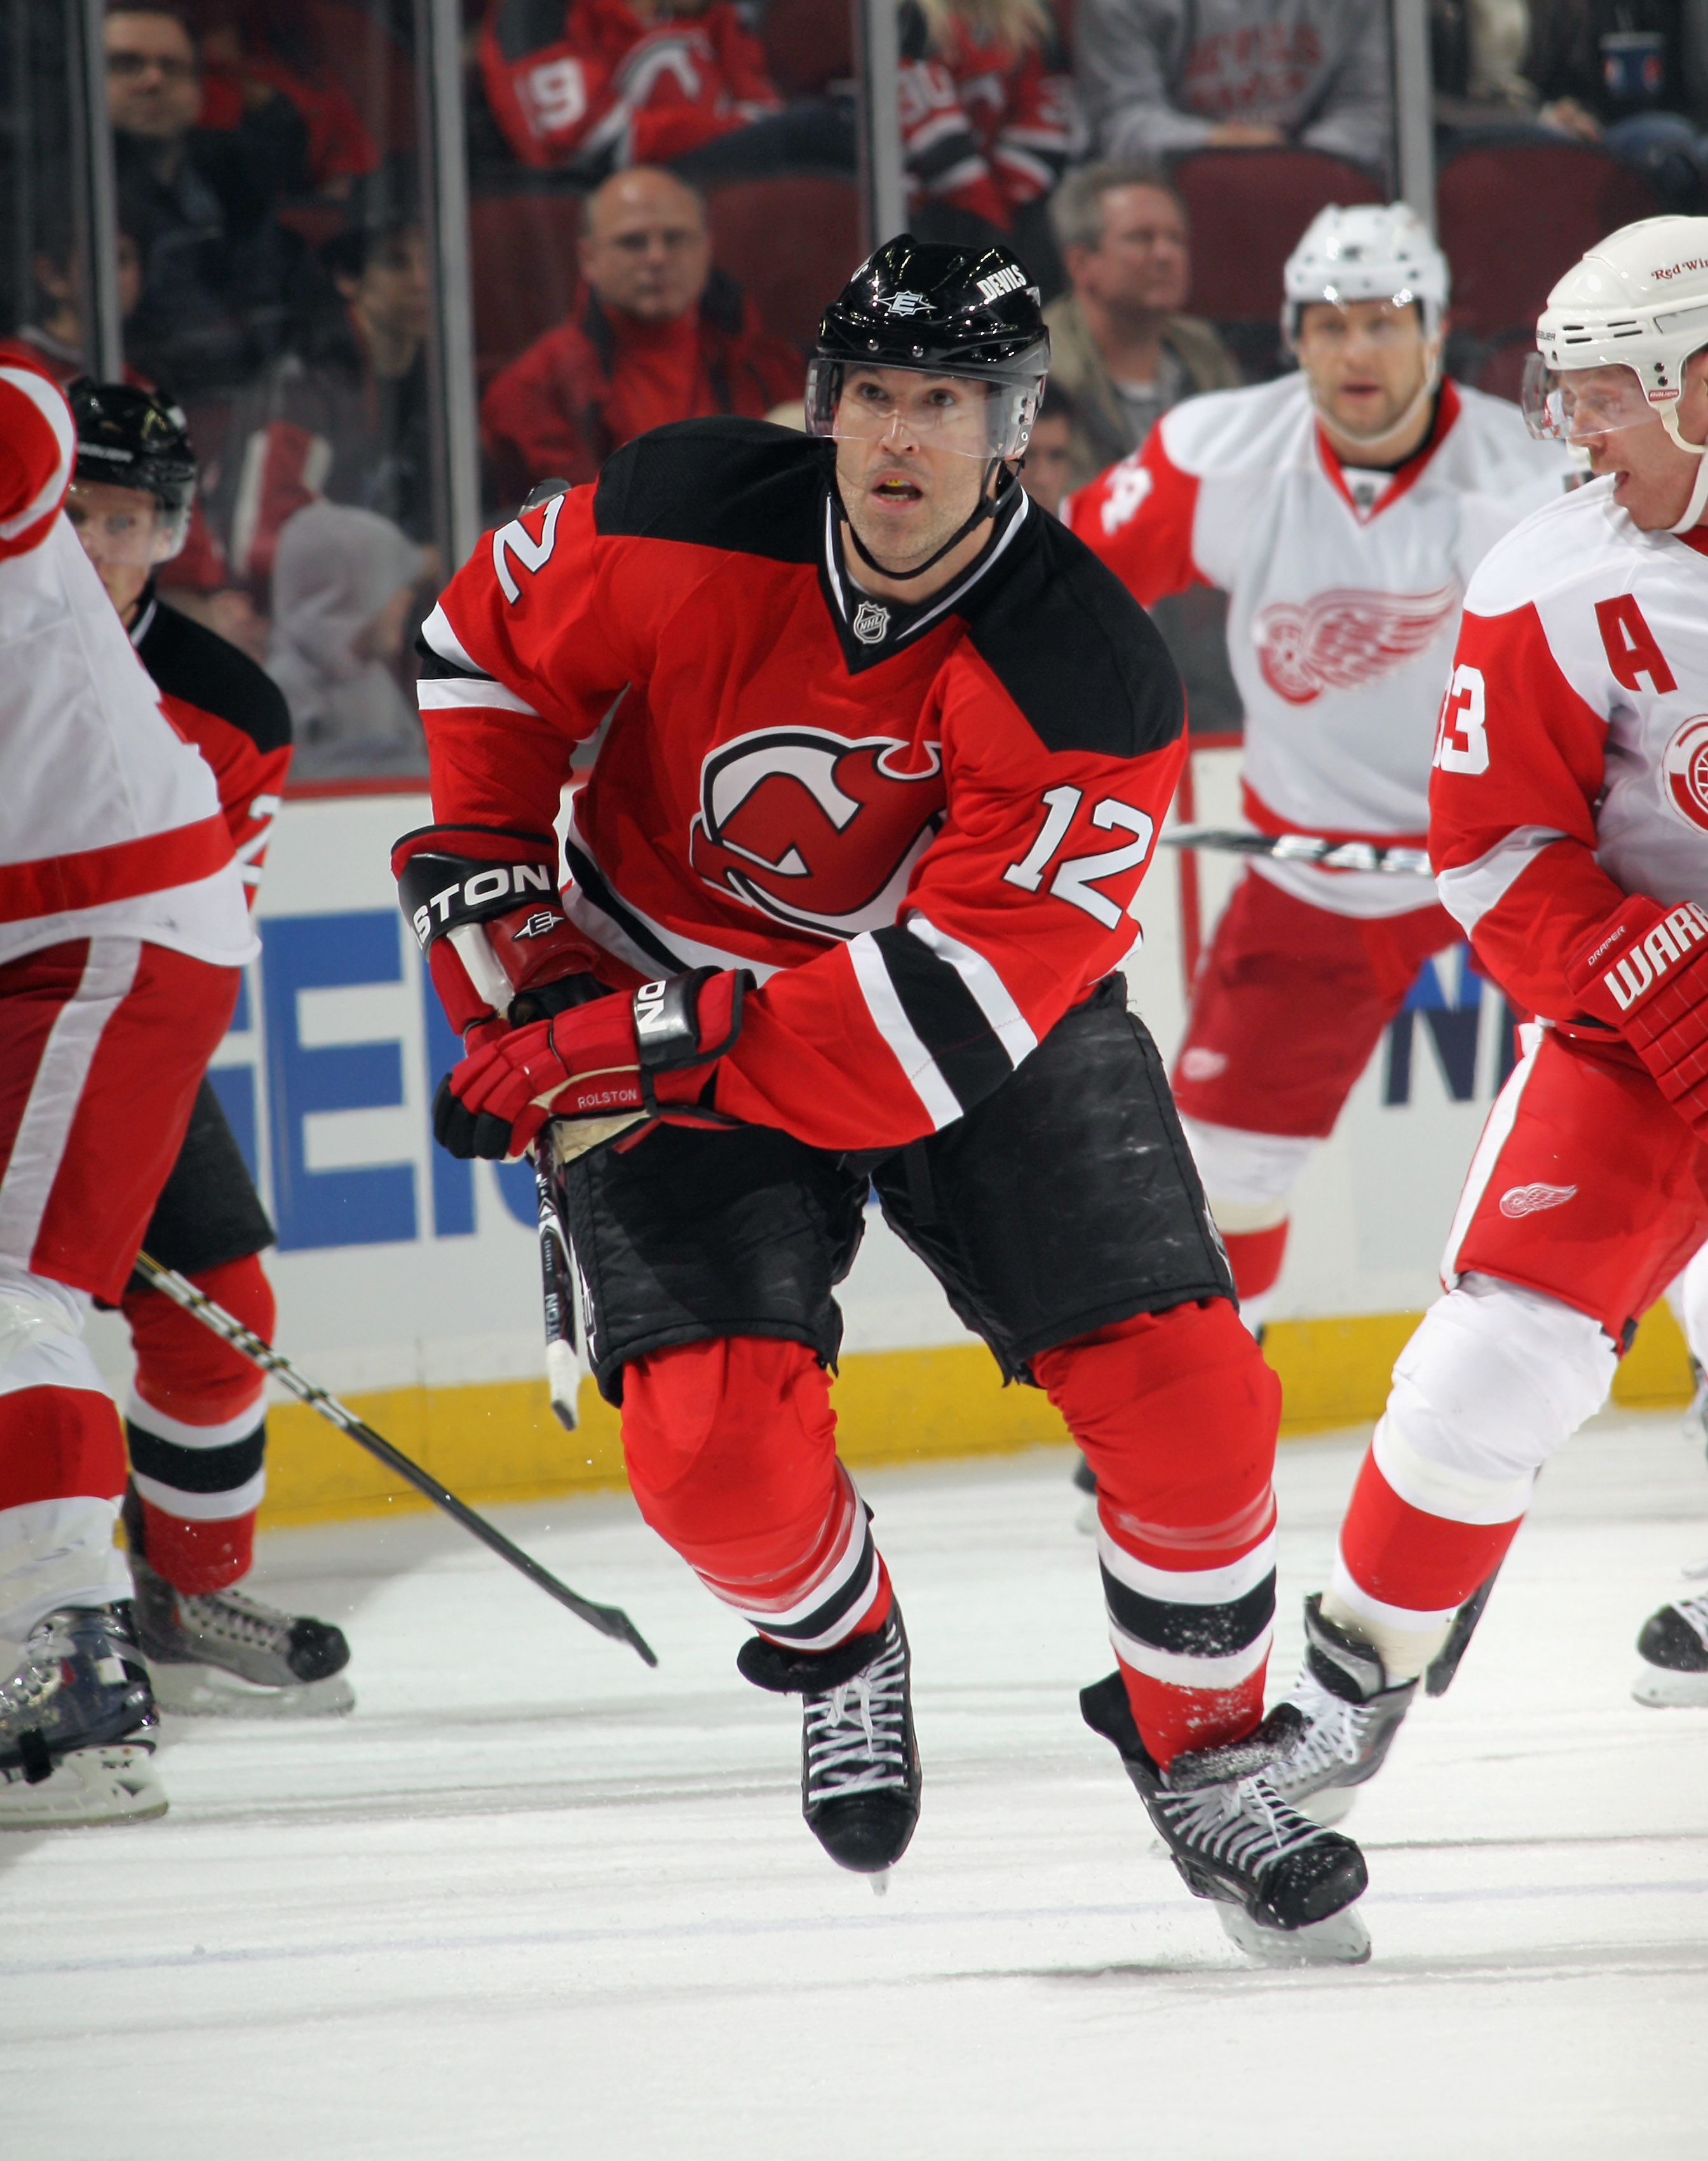 NEWARK, NJ - DECEMBER 11: Brian Rolston #12 of the New Jersey Devils skates against the Detroit Red Wings at the Prudential Center on December 11, 2010 in Newark, New Jersey. The Red Wings defeated the the Devils 4-1.  (Photo by Bruce Bennett/Getty Images